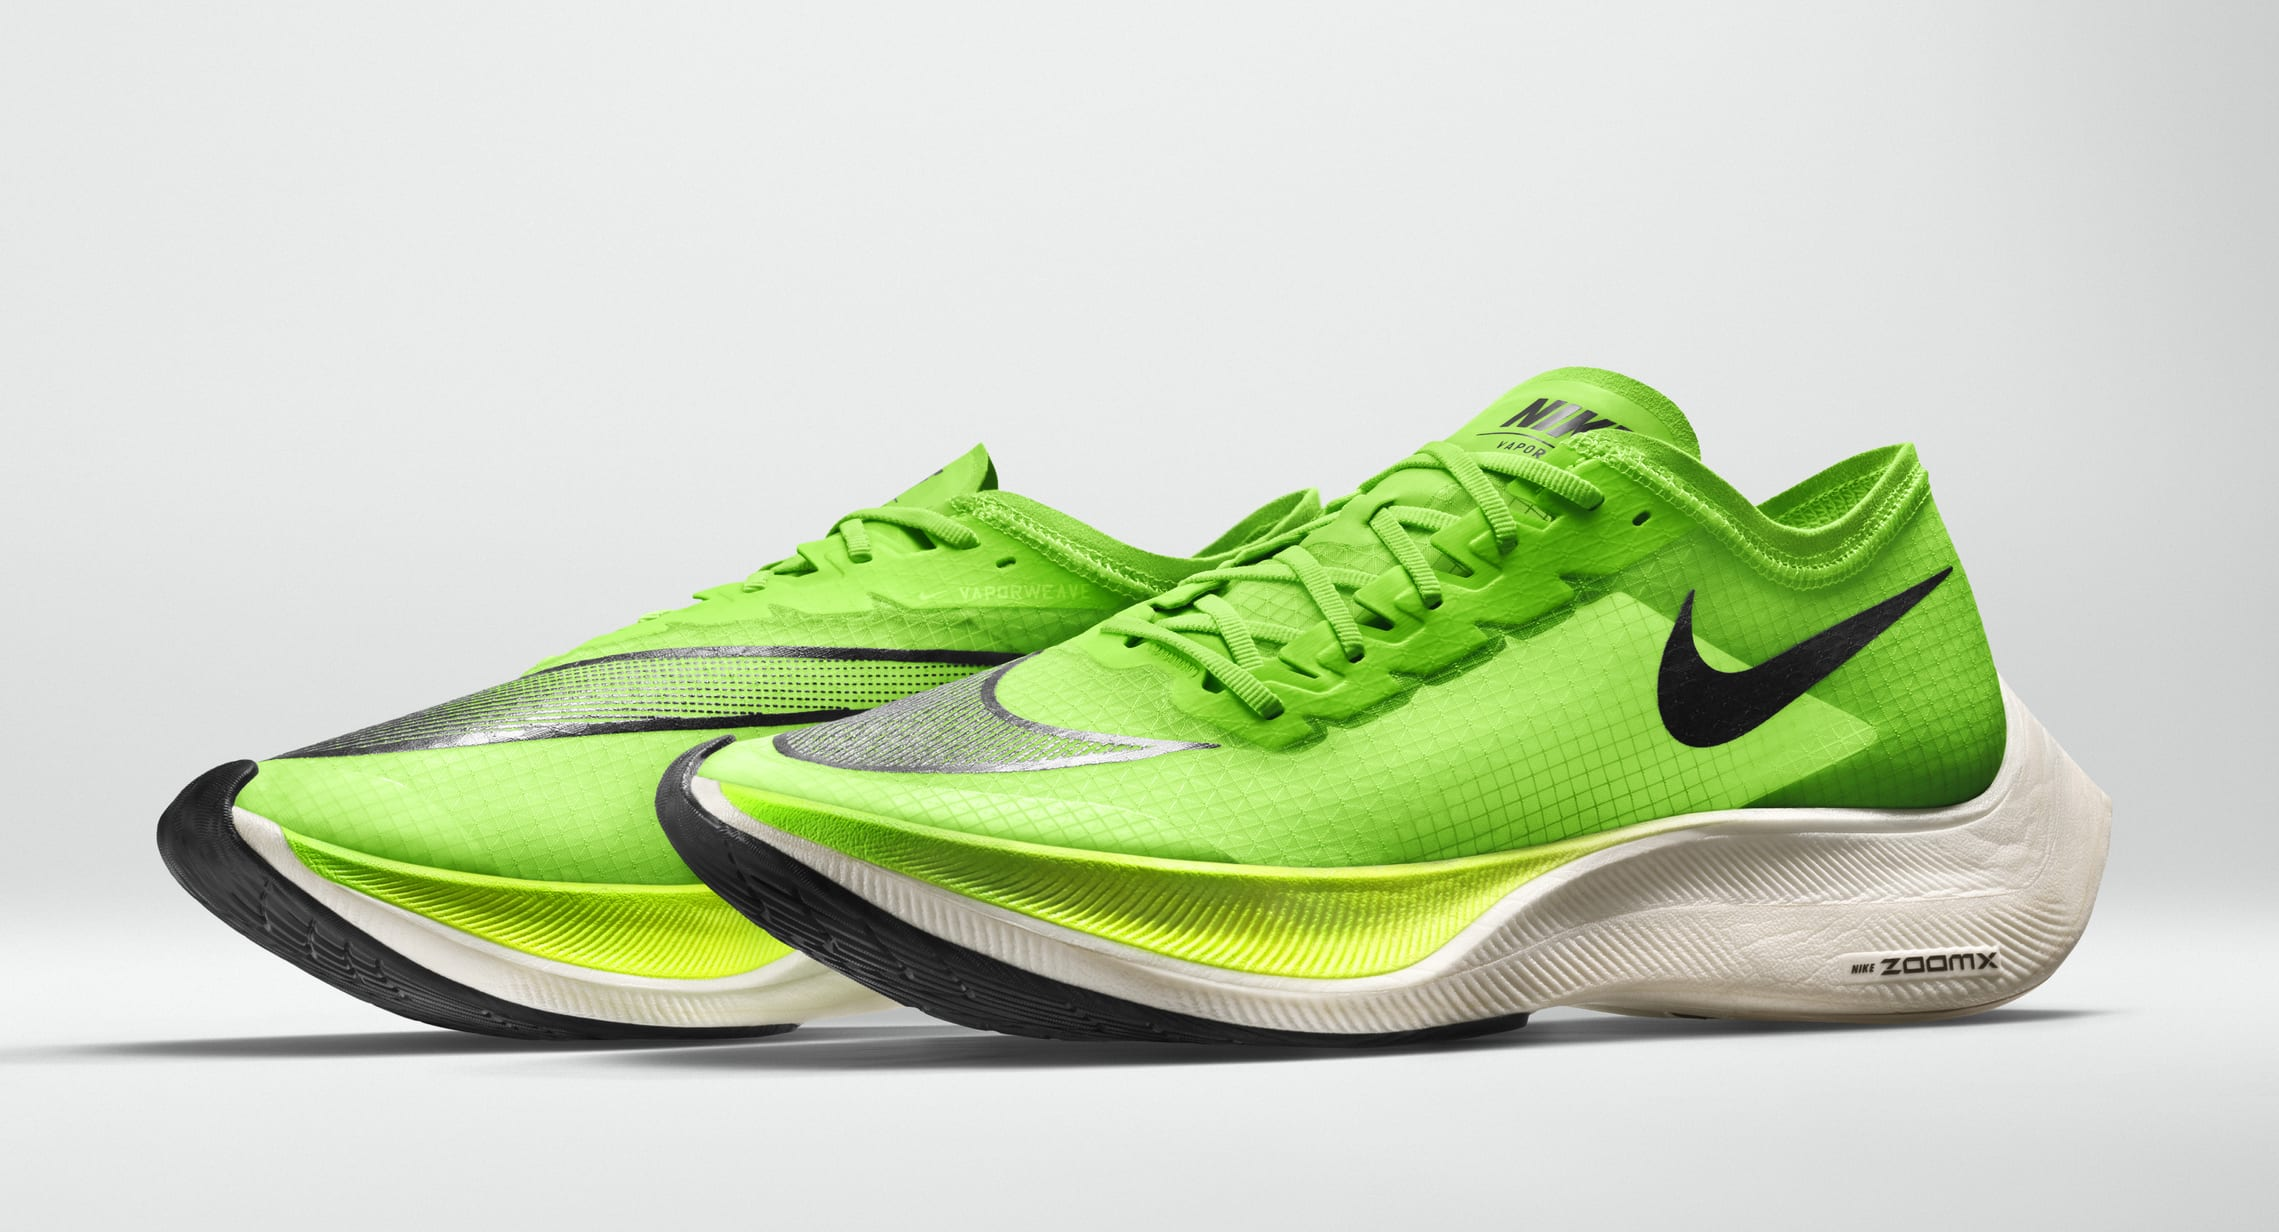 Nike ZoomX Vaporfly Next% (Pair)